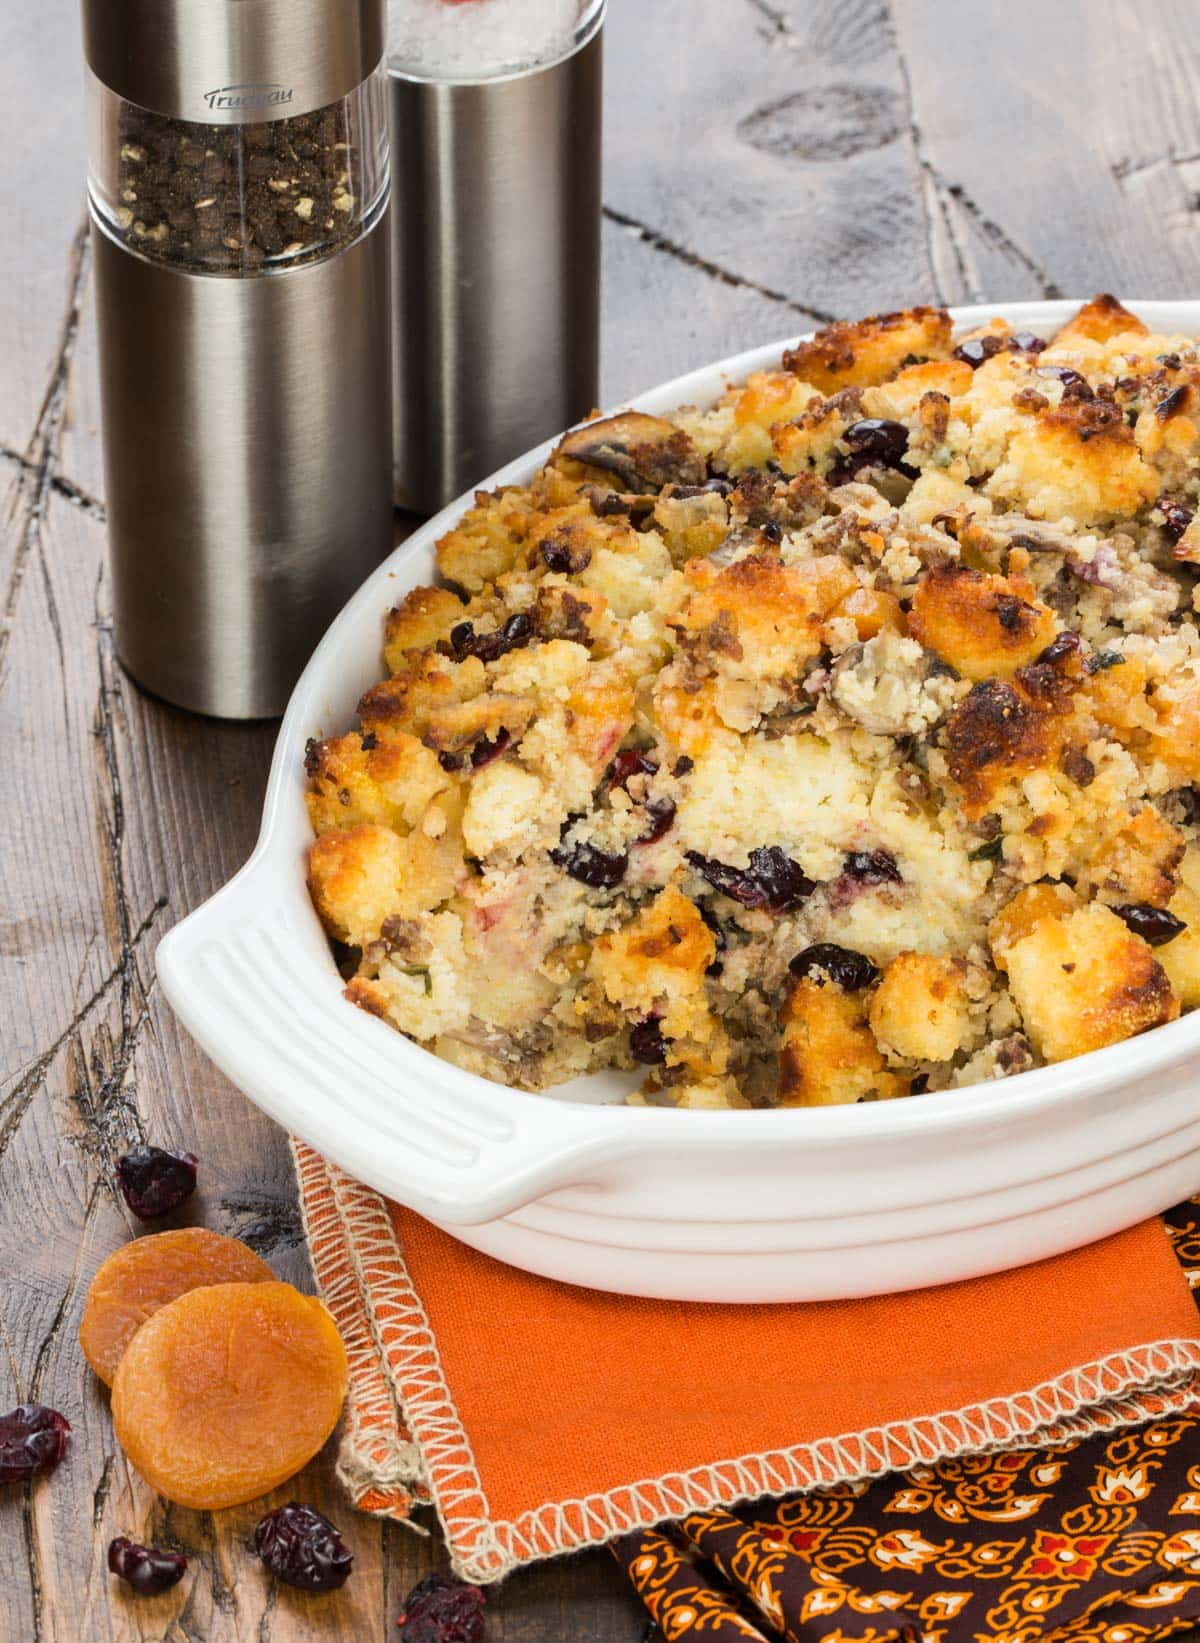 ... side with this savory Cornbread Stuffing with Sausage and Dried Fruit